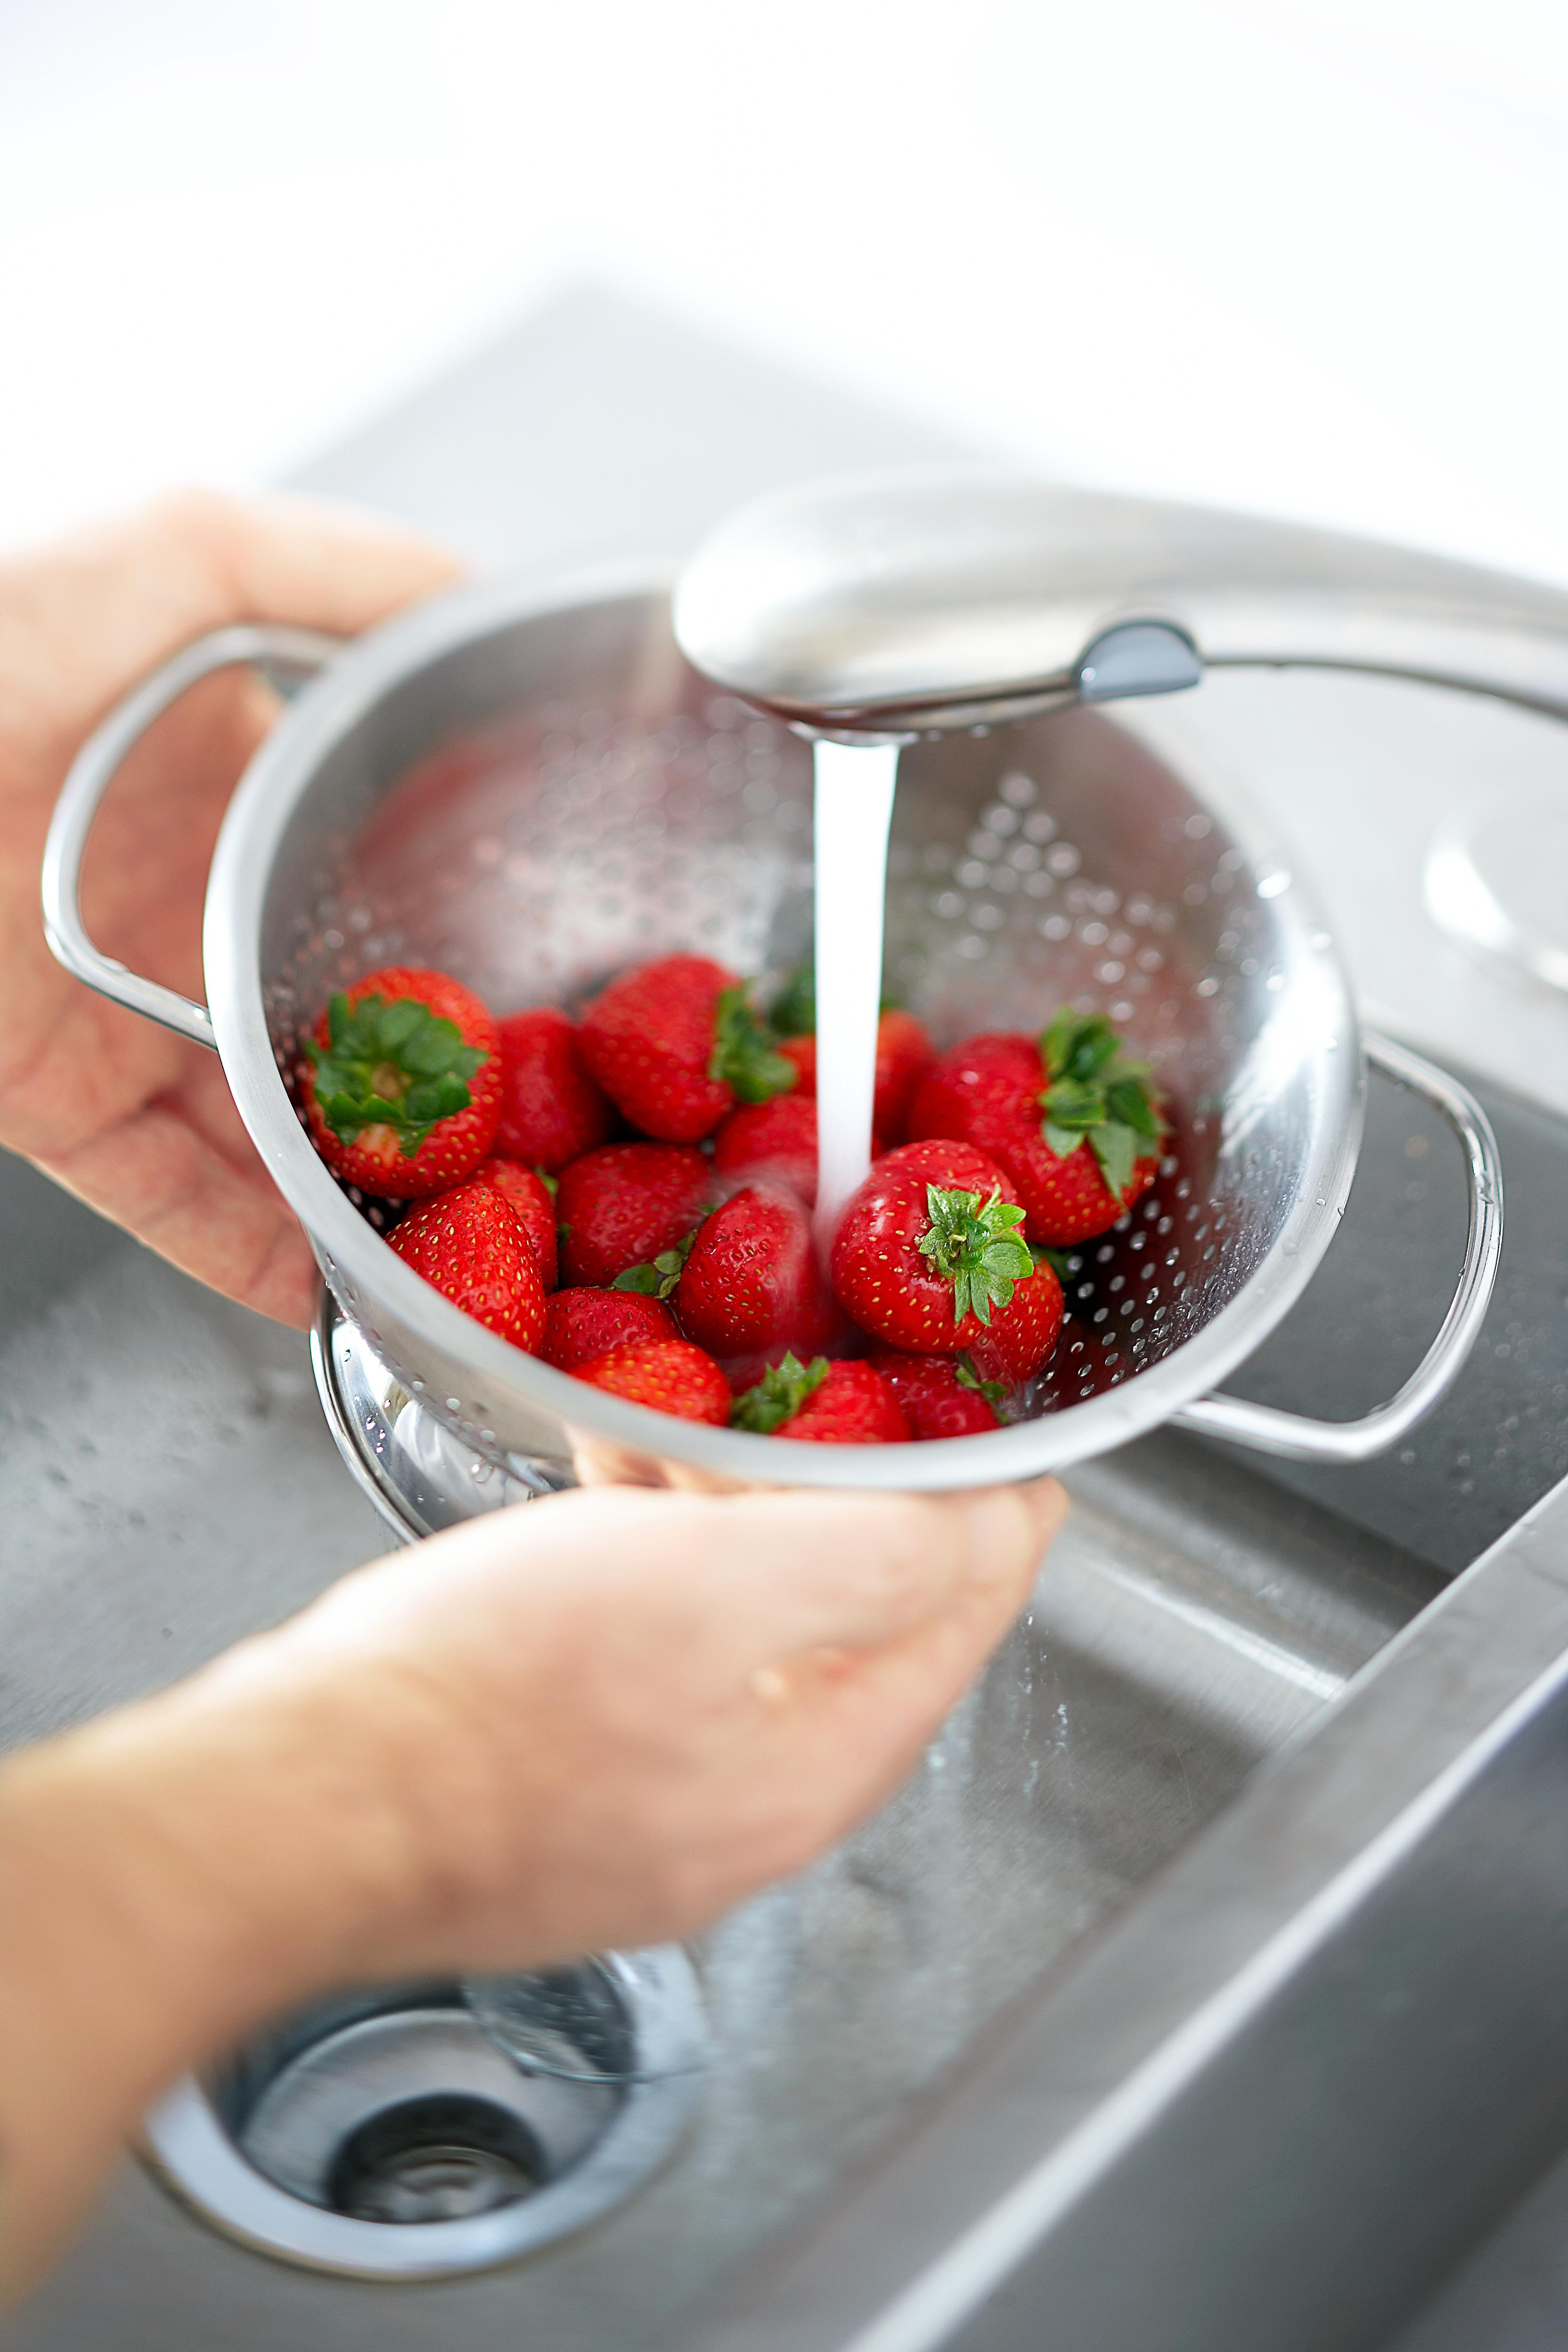 rinsing strawberries in colander under faucet